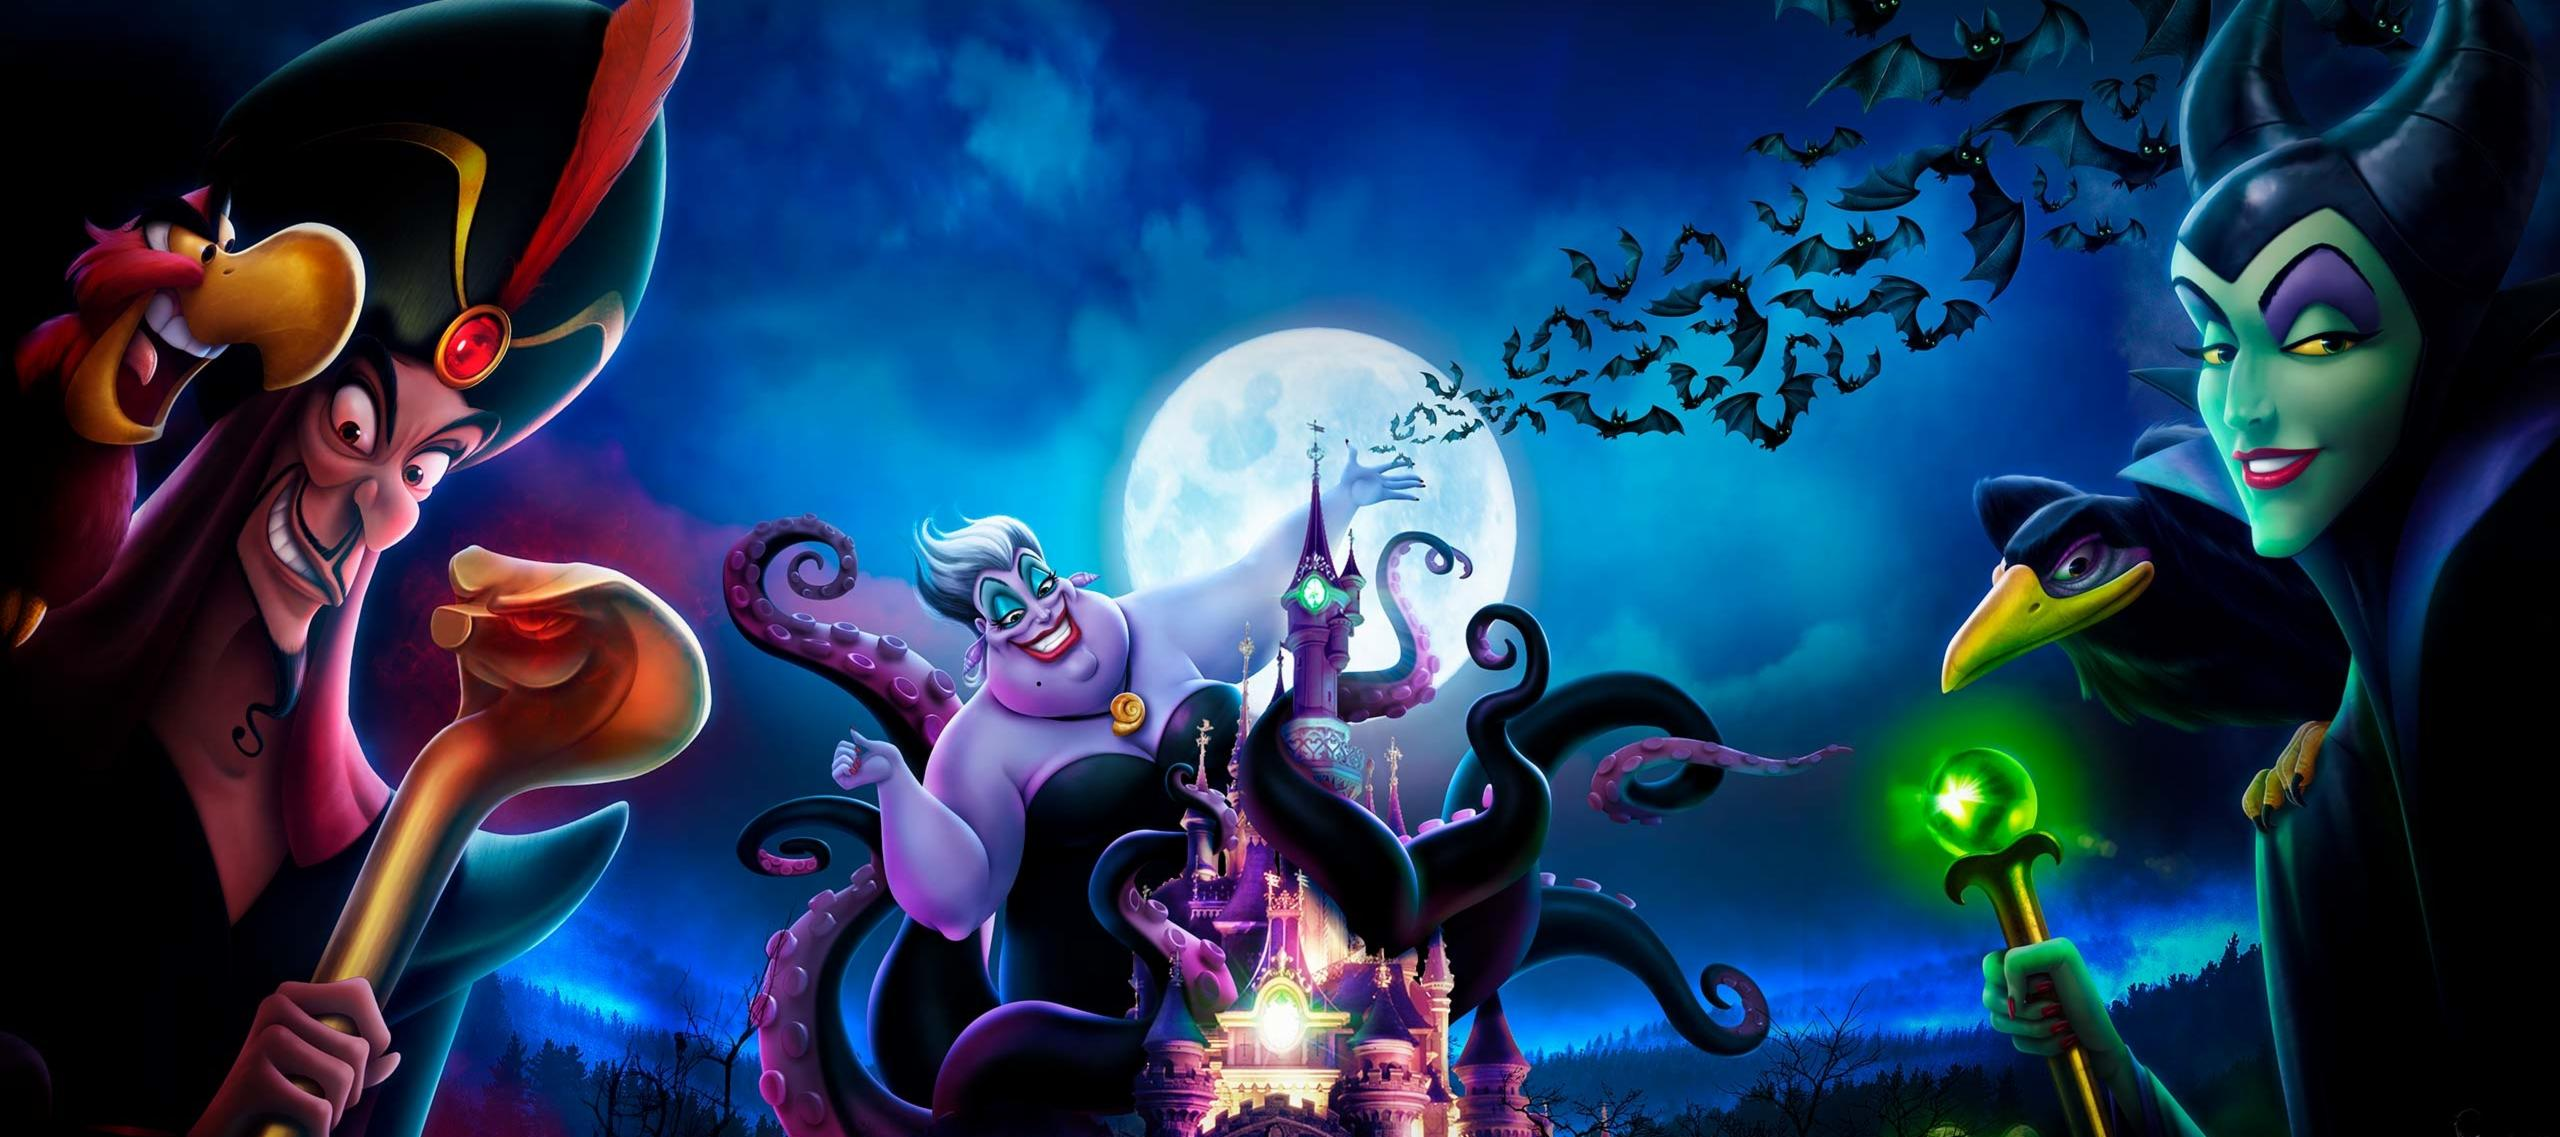 Villains at Disneyland Paris' Halloween Season